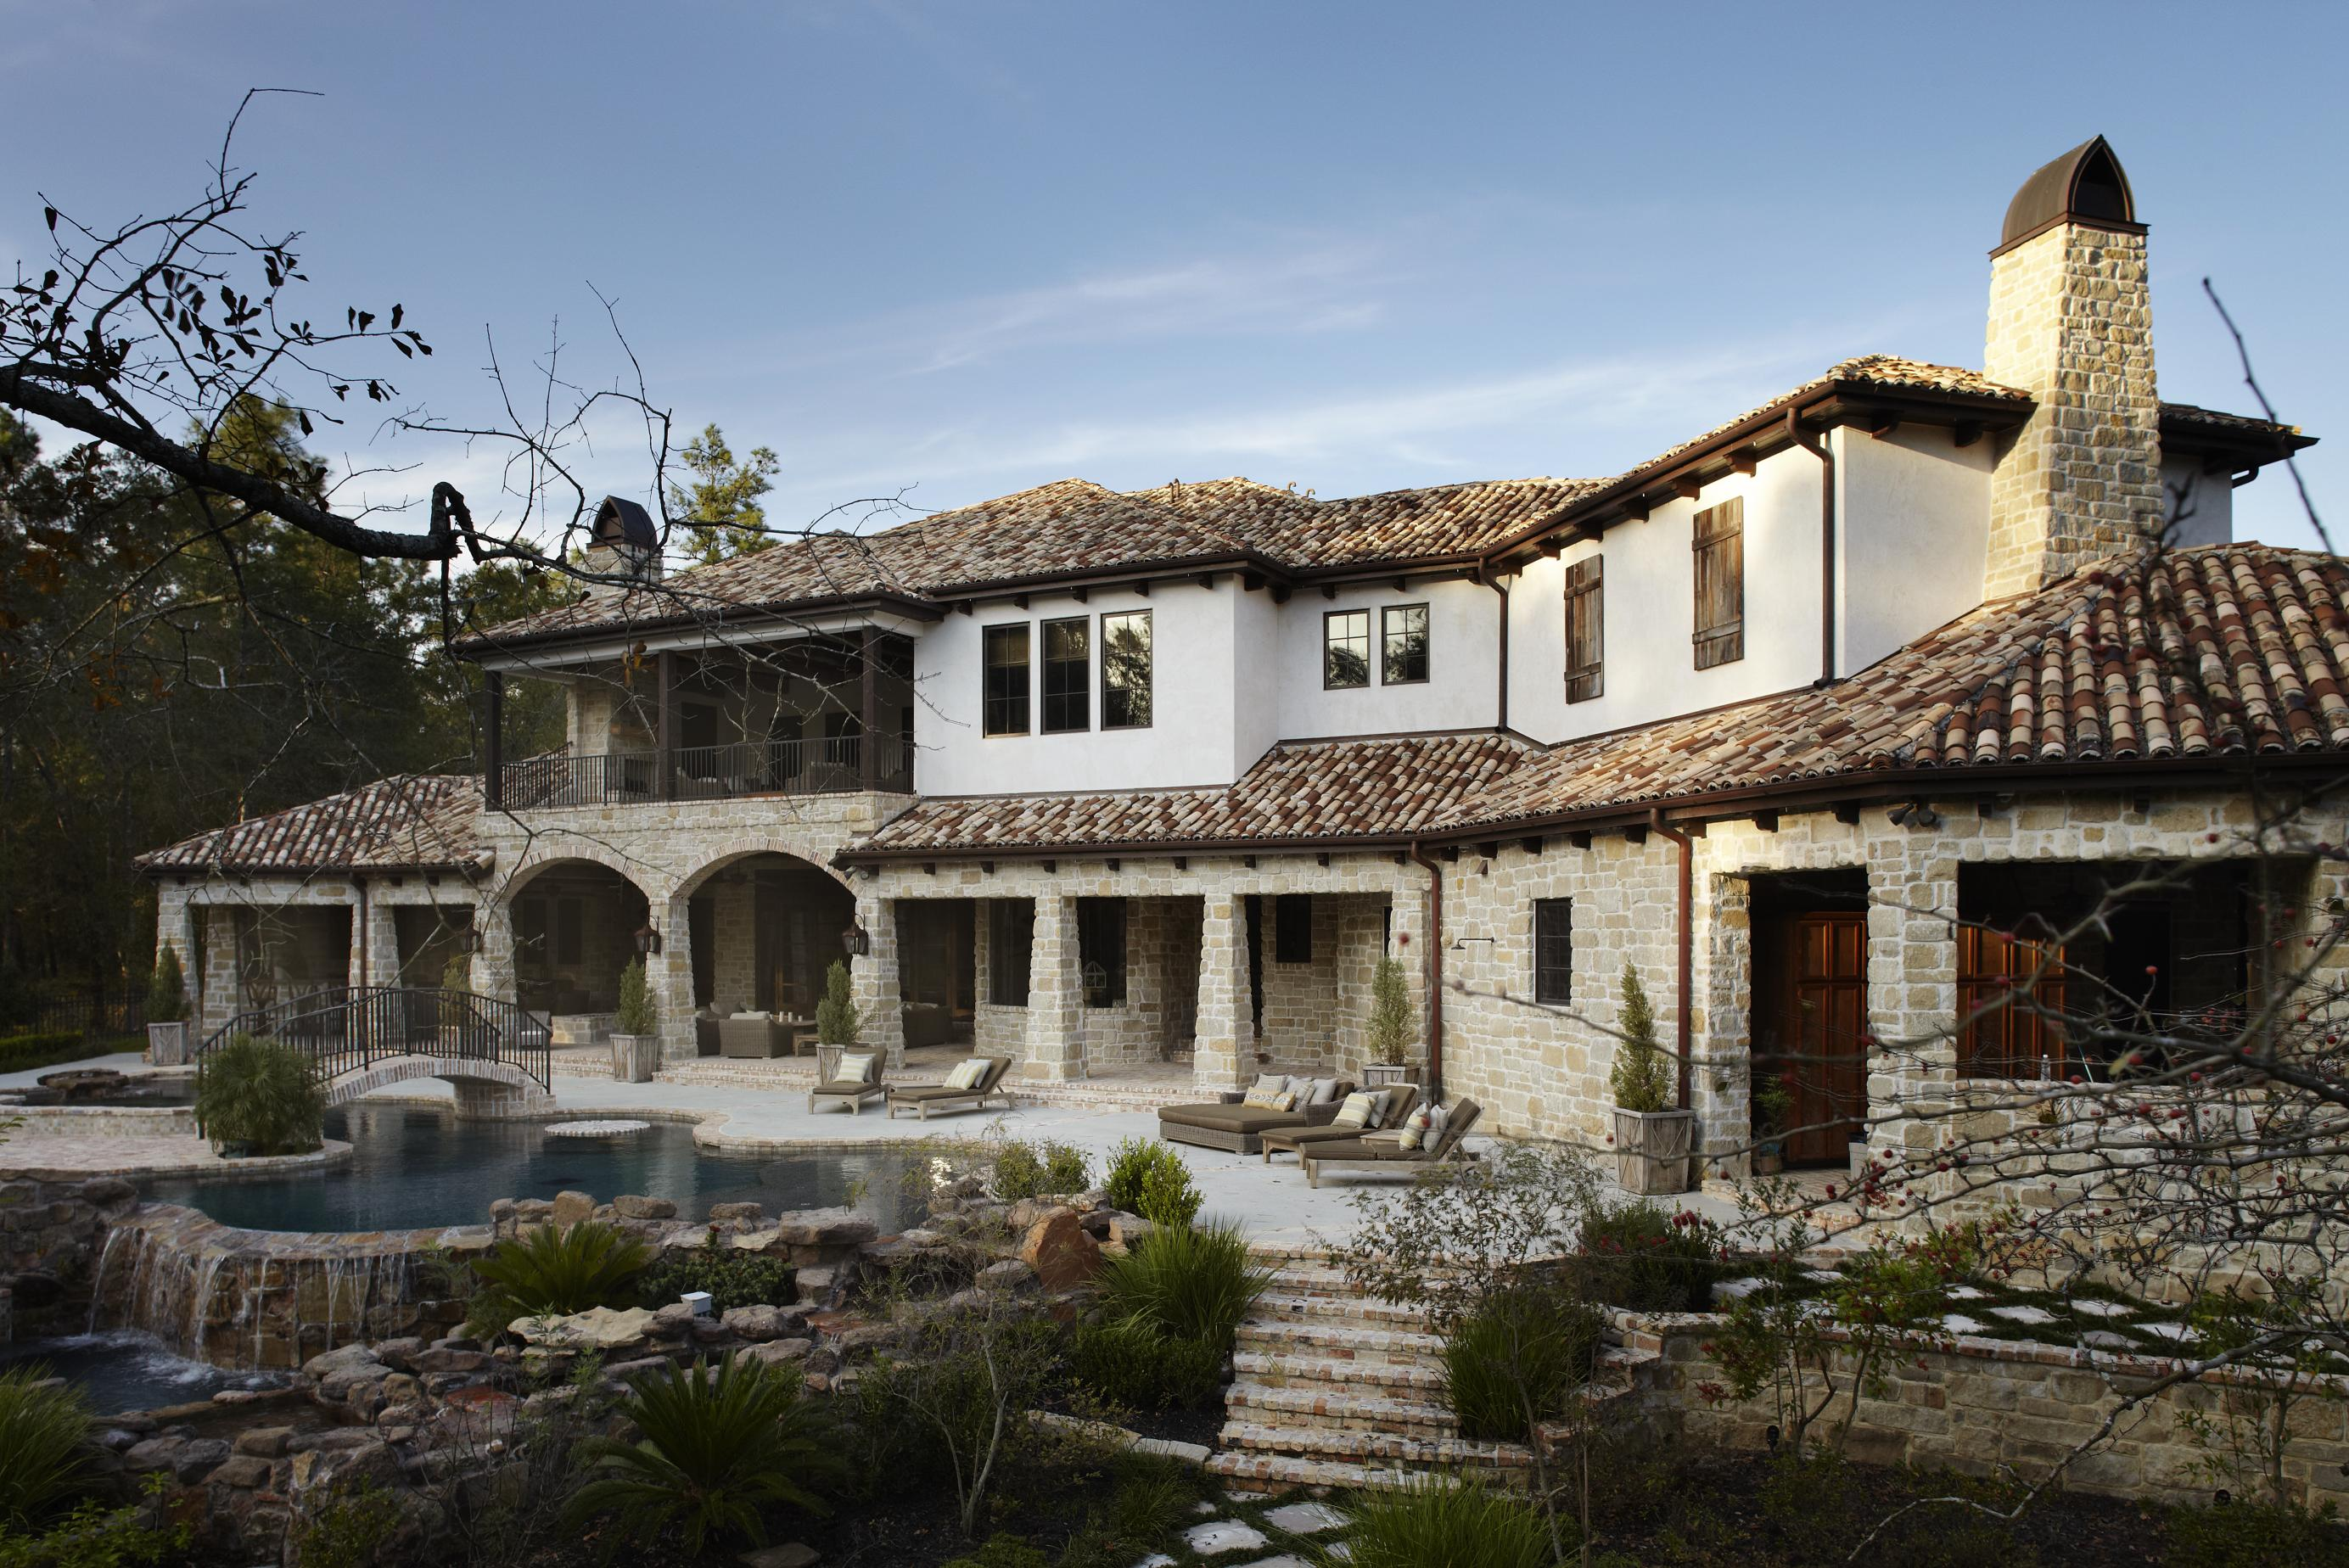 Stylish Mediterranean Exteriors | Traditional Home on brick ranch house plans, brick house with vinyl siding, brick and rock house plans, two story brick traditional house plans, brick french country house plans, 4-bedroom brick house plans, brick and cedar house plans, brick and stone house plans,